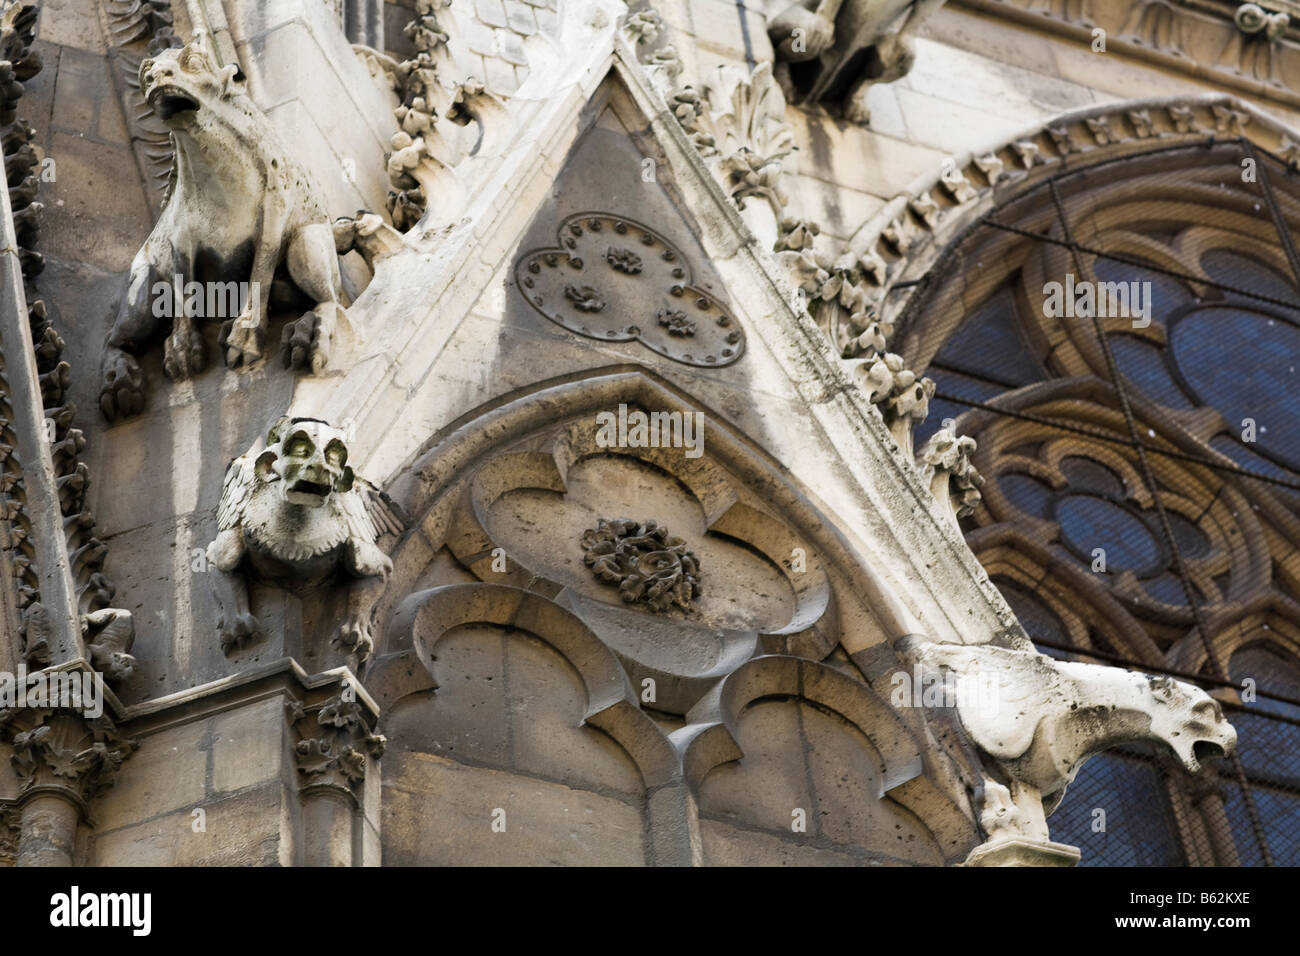 Gargoyles look down from the exterior walls of Paris' Cathedral of Notre-Dame - Stock Image